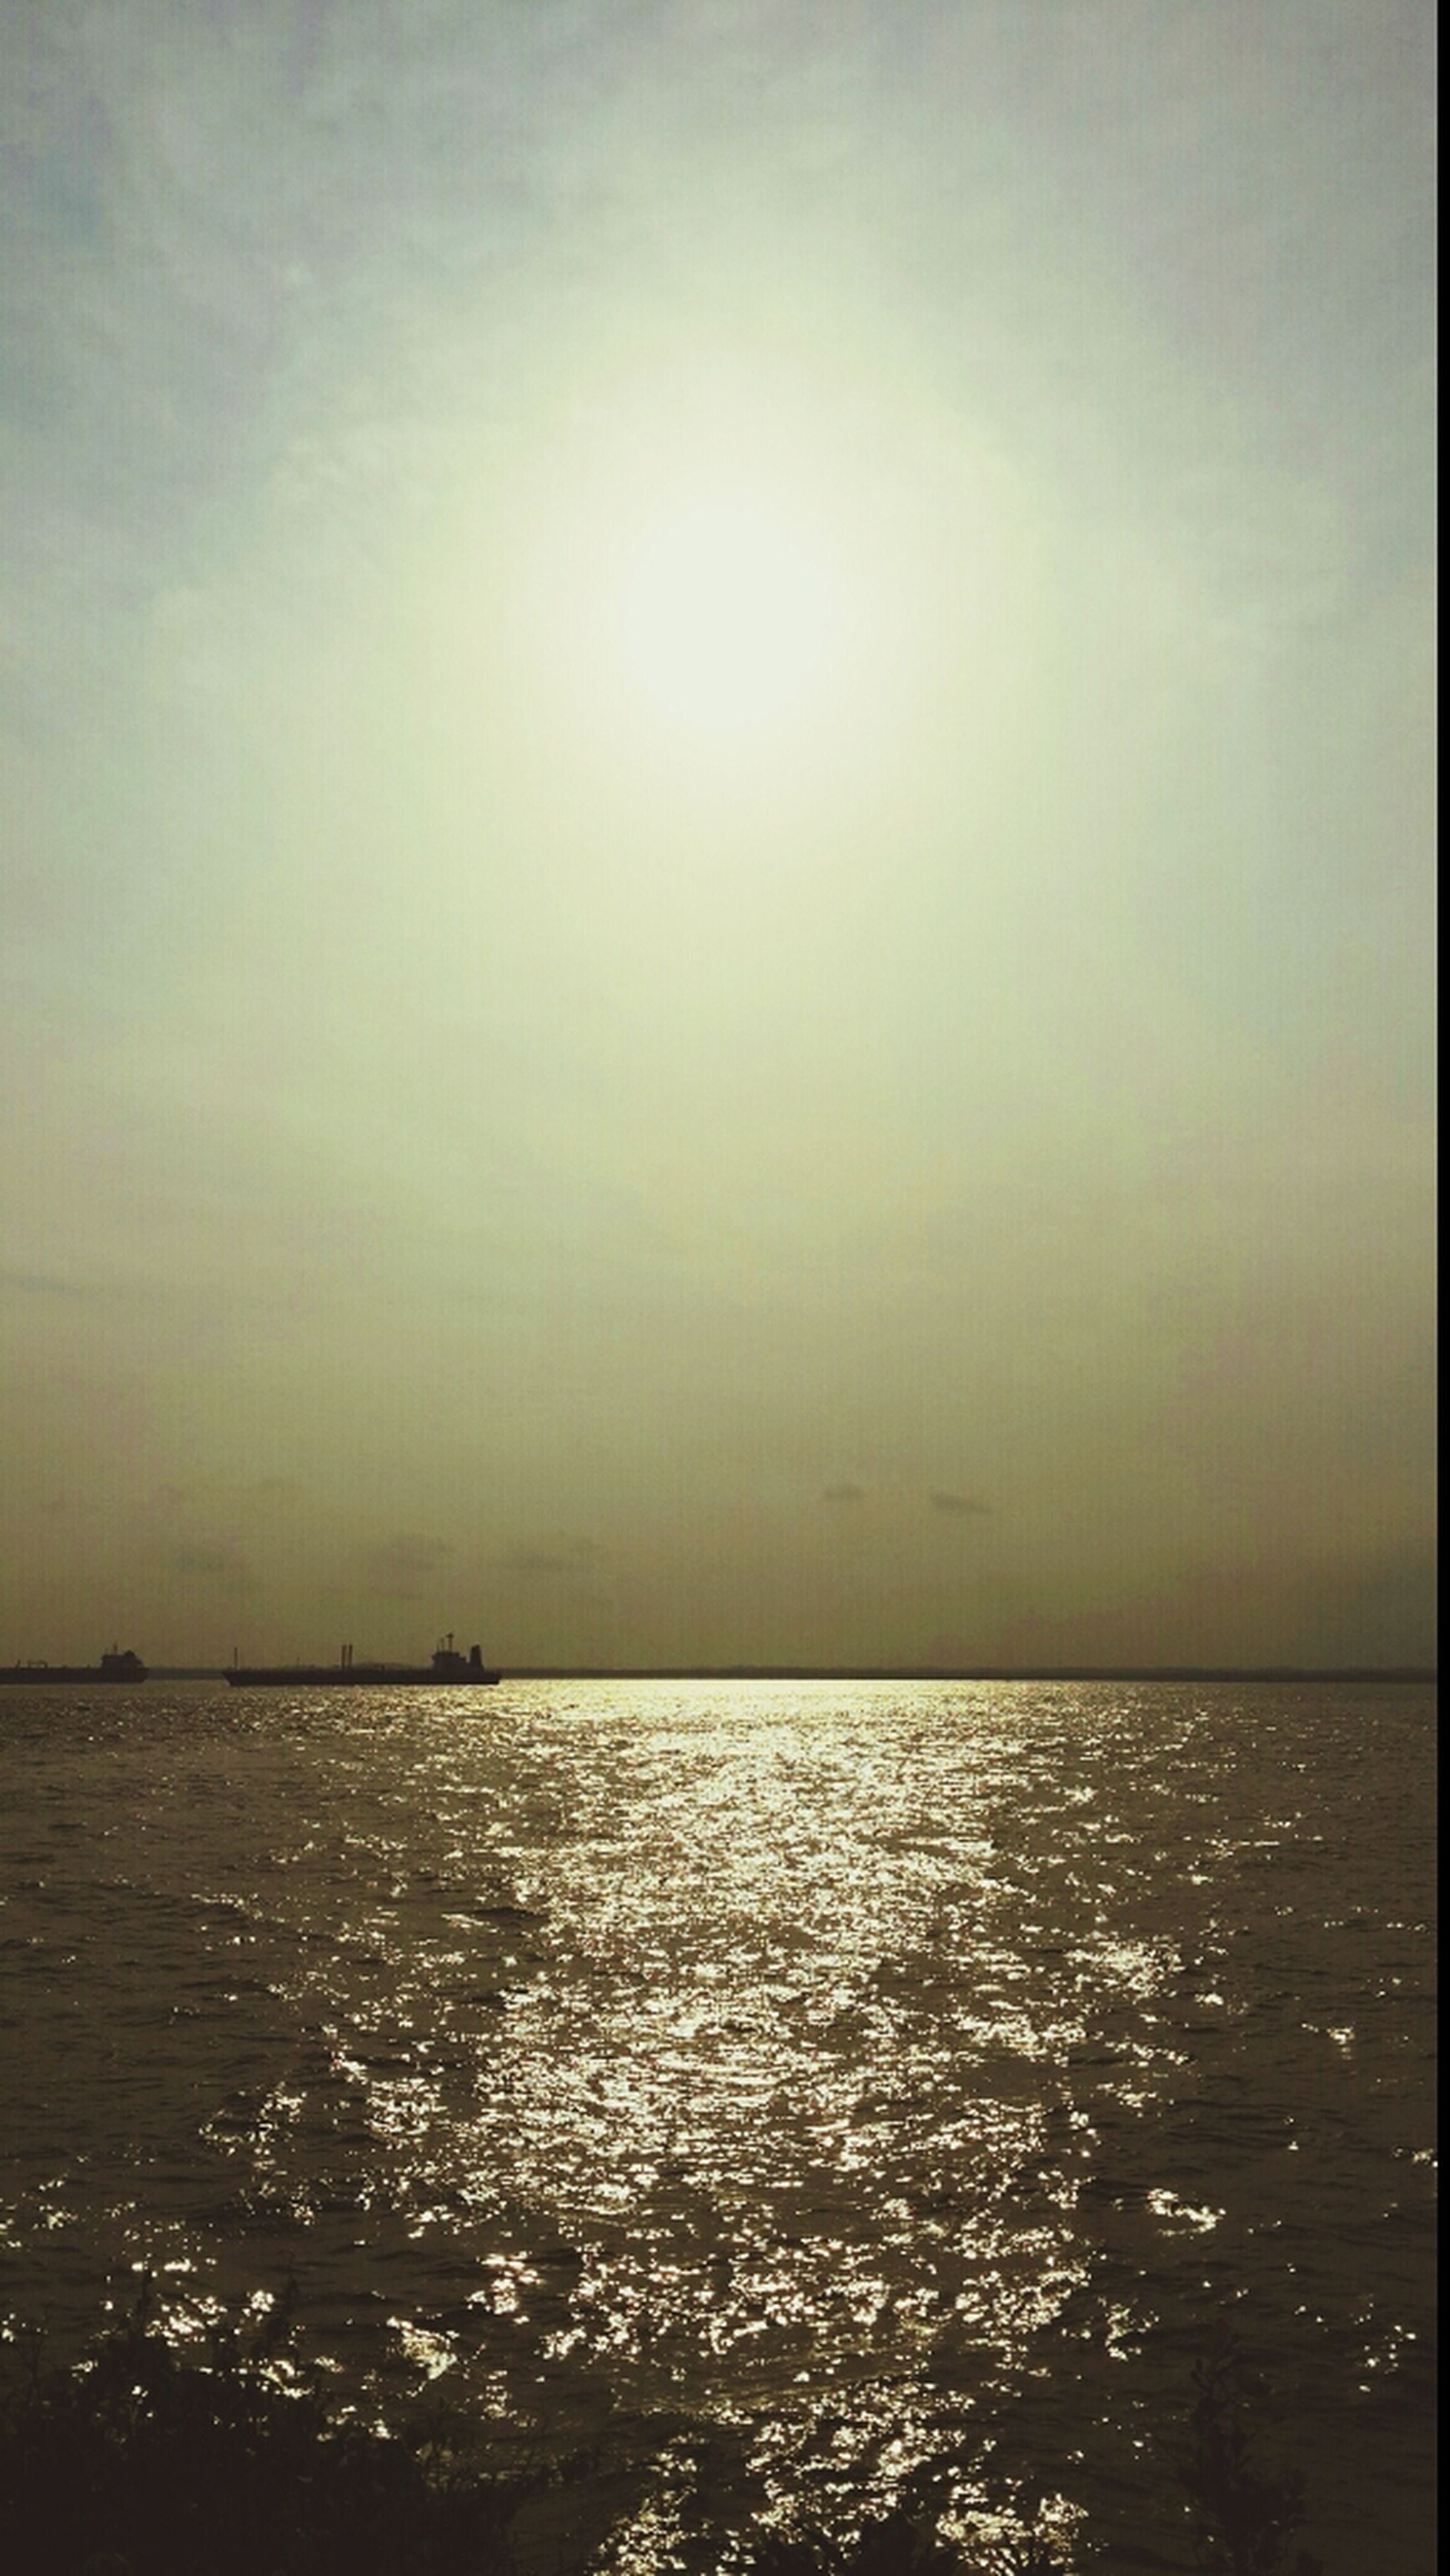 water, sea, waterfront, tranquil scene, tranquility, scenics, horizon over water, sun, beauty in nature, sky, nature, sunset, rippled, idyllic, reflection, sunlight, silhouette, outdoors, seascape, sunbeam